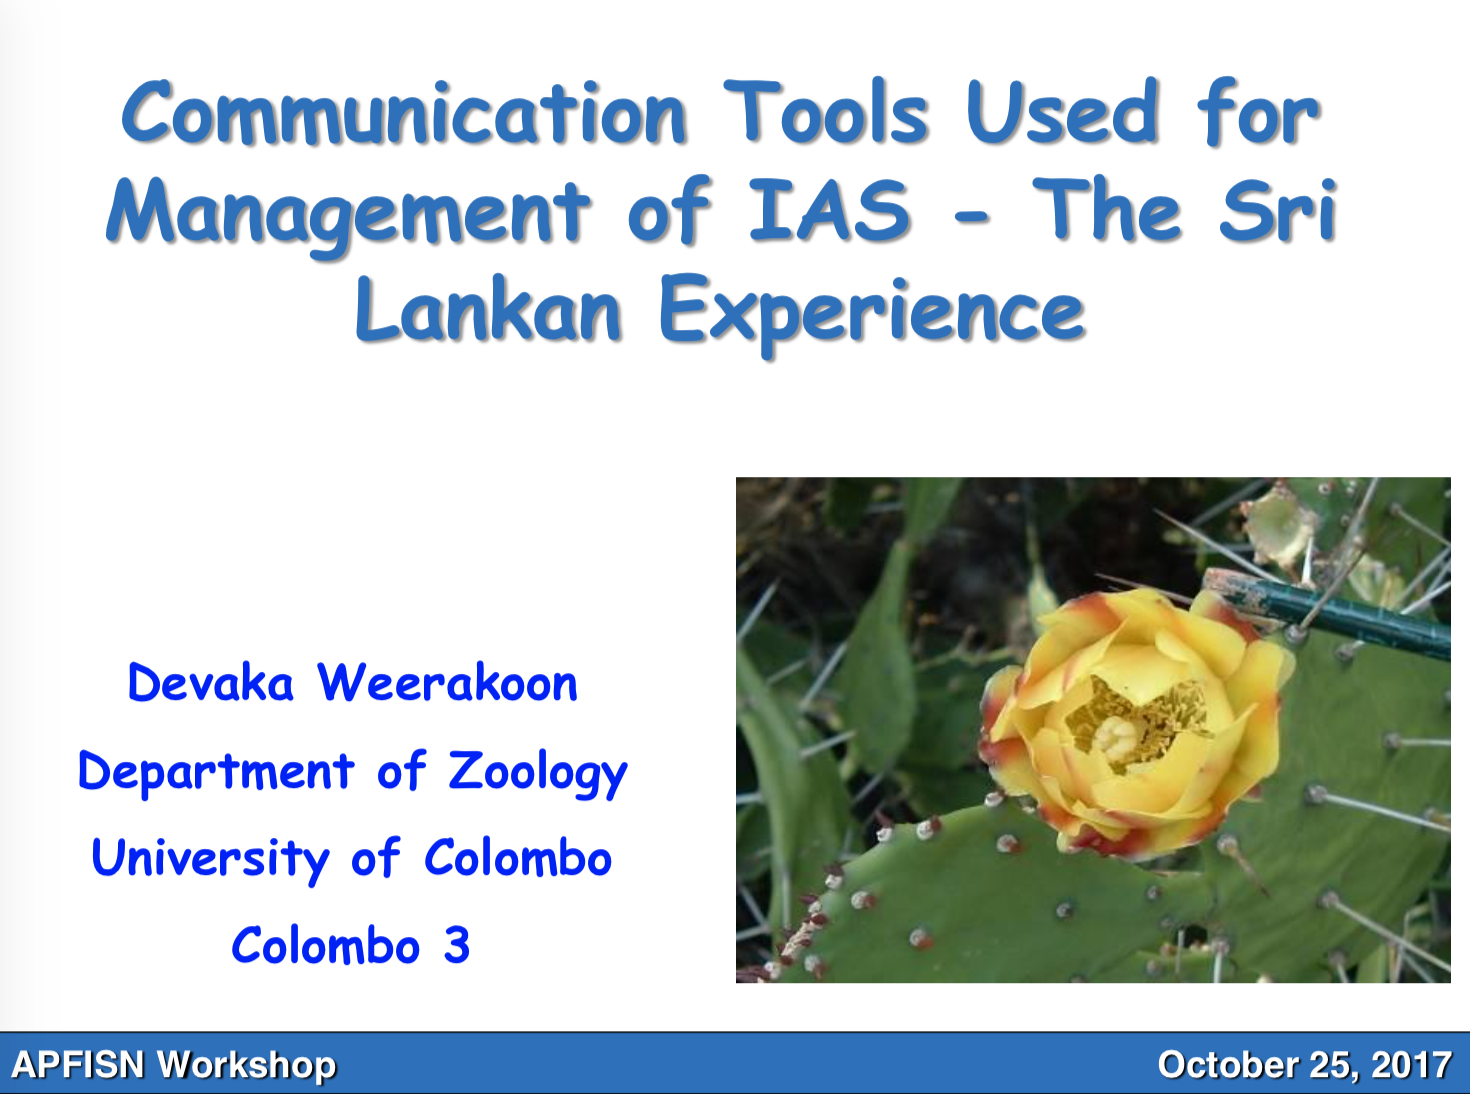 Communication Tools Used for Management of IAS - The Sri Lankan